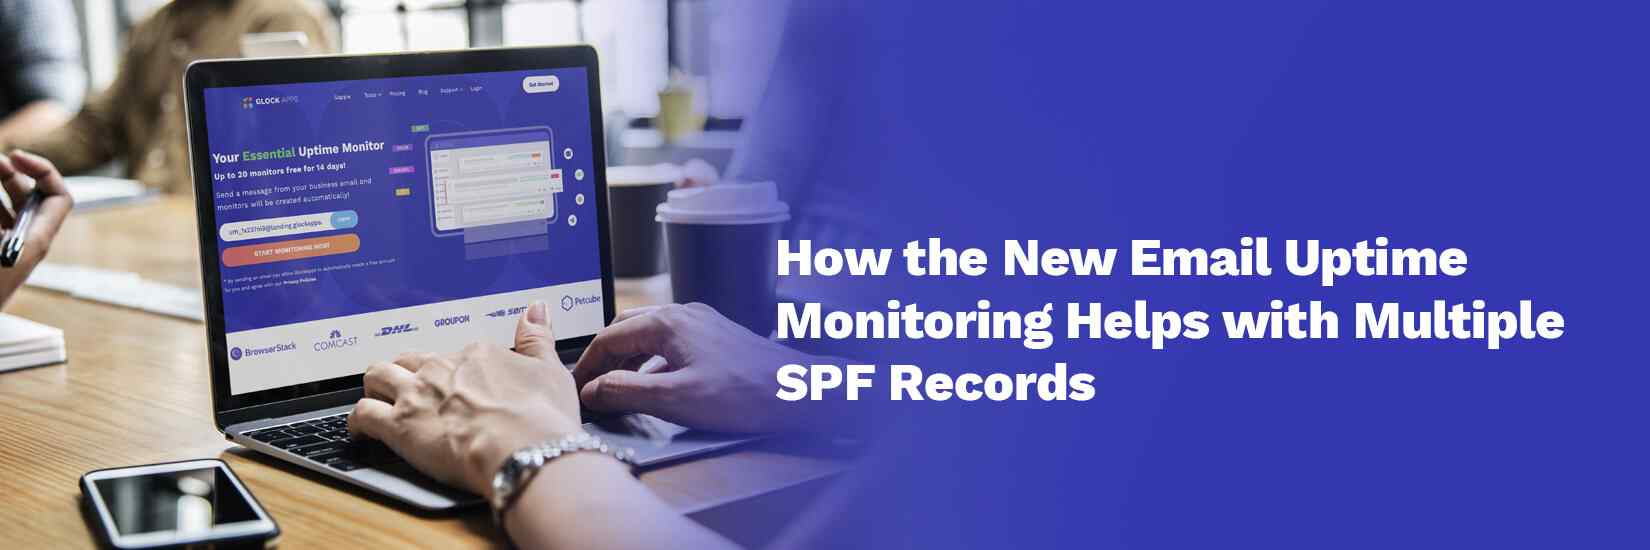 How the New Email Uptime Monitoring Helps with Multiple SPF Records